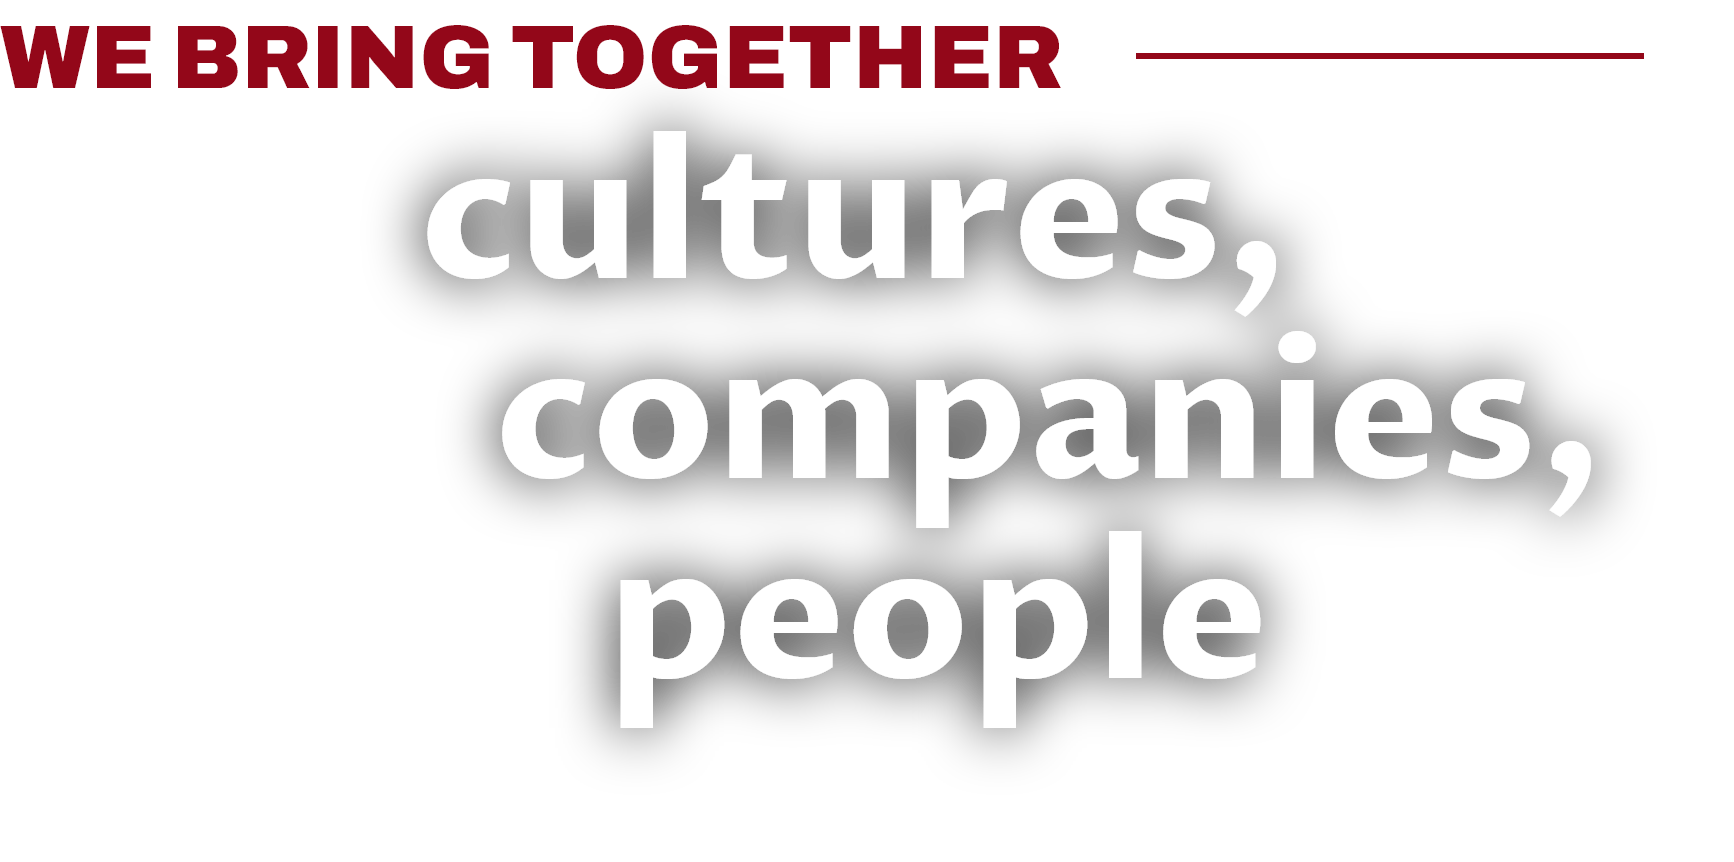 We bring together cultures, companies, people